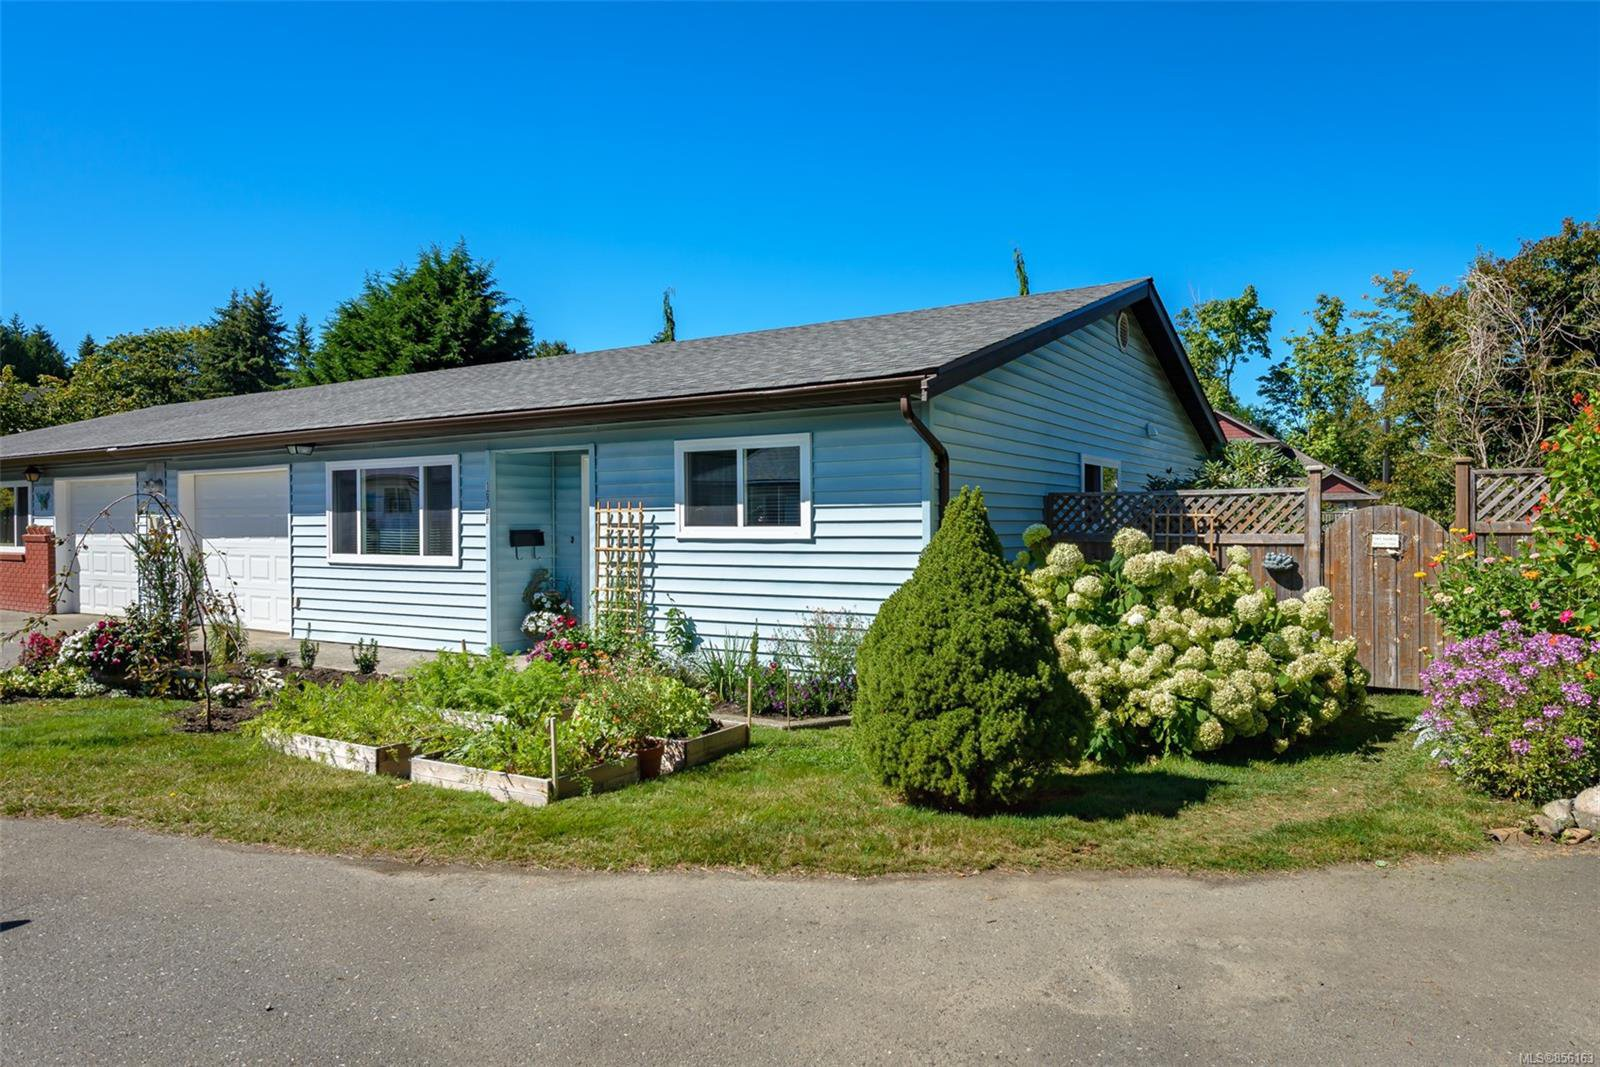 Main Photo: F 1670 Piercy Ave in : CV Courtenay City Row/Townhouse for sale (Comox Valley)  : MLS®# 856163